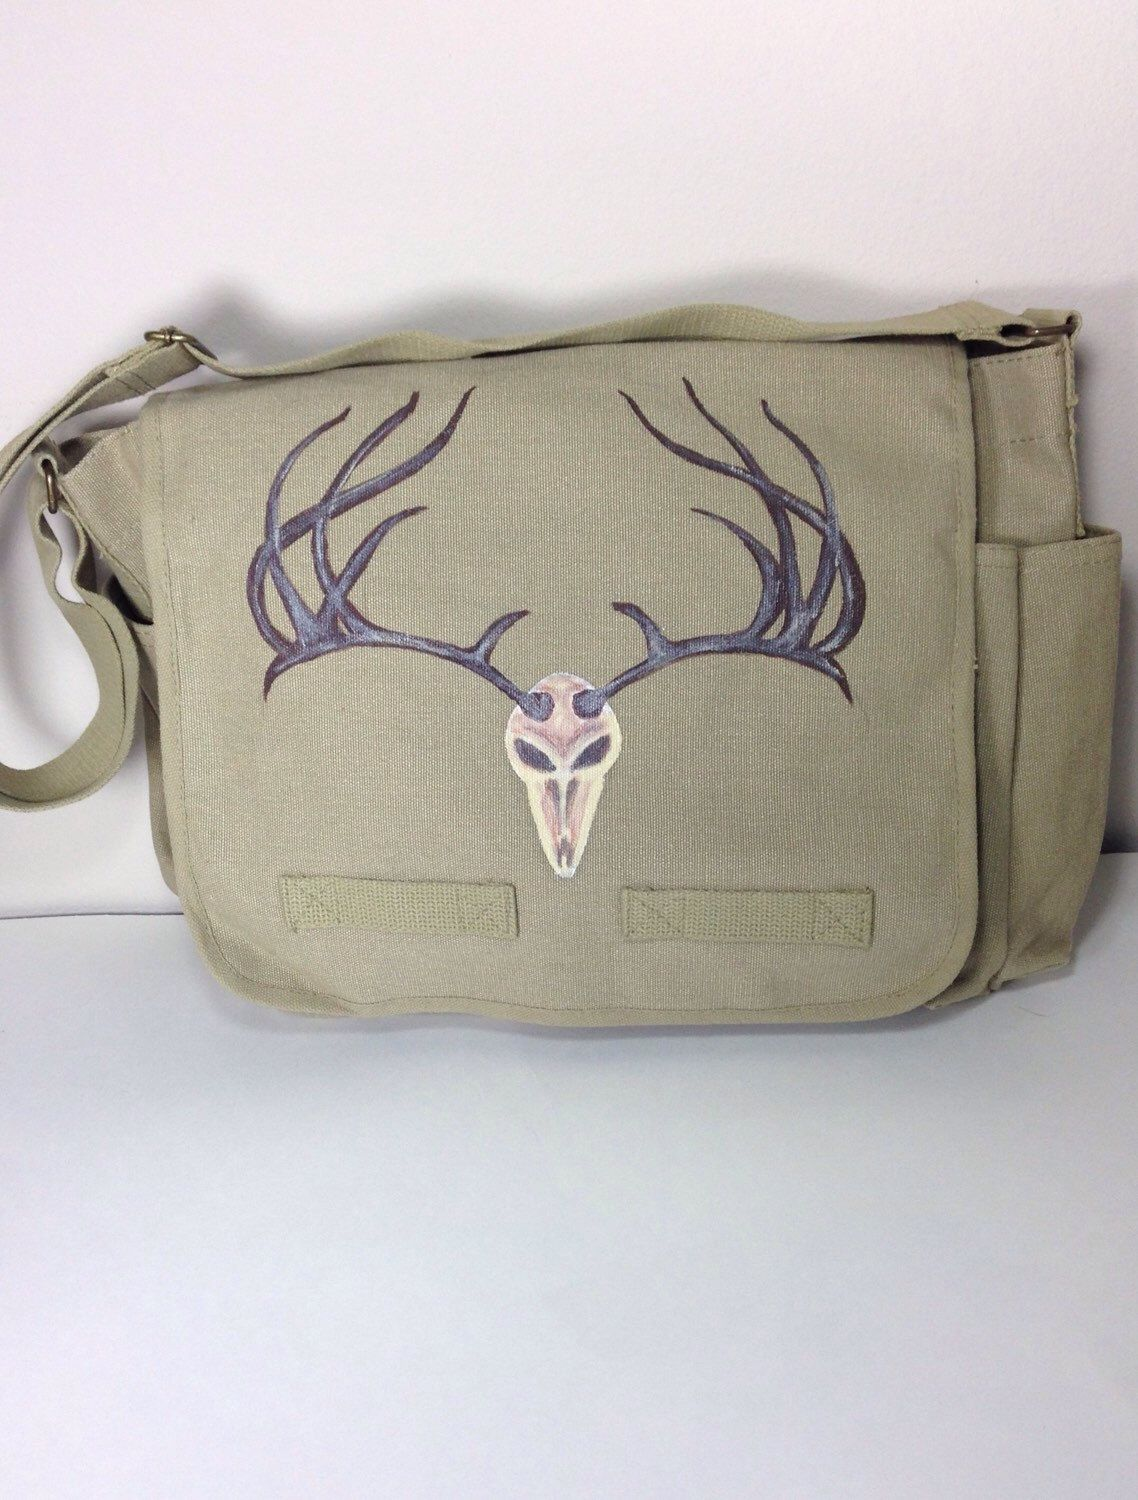 Everest Large Cotton Canvas Messenger Bag with Hand Painted Deer Horns  6329145221b48